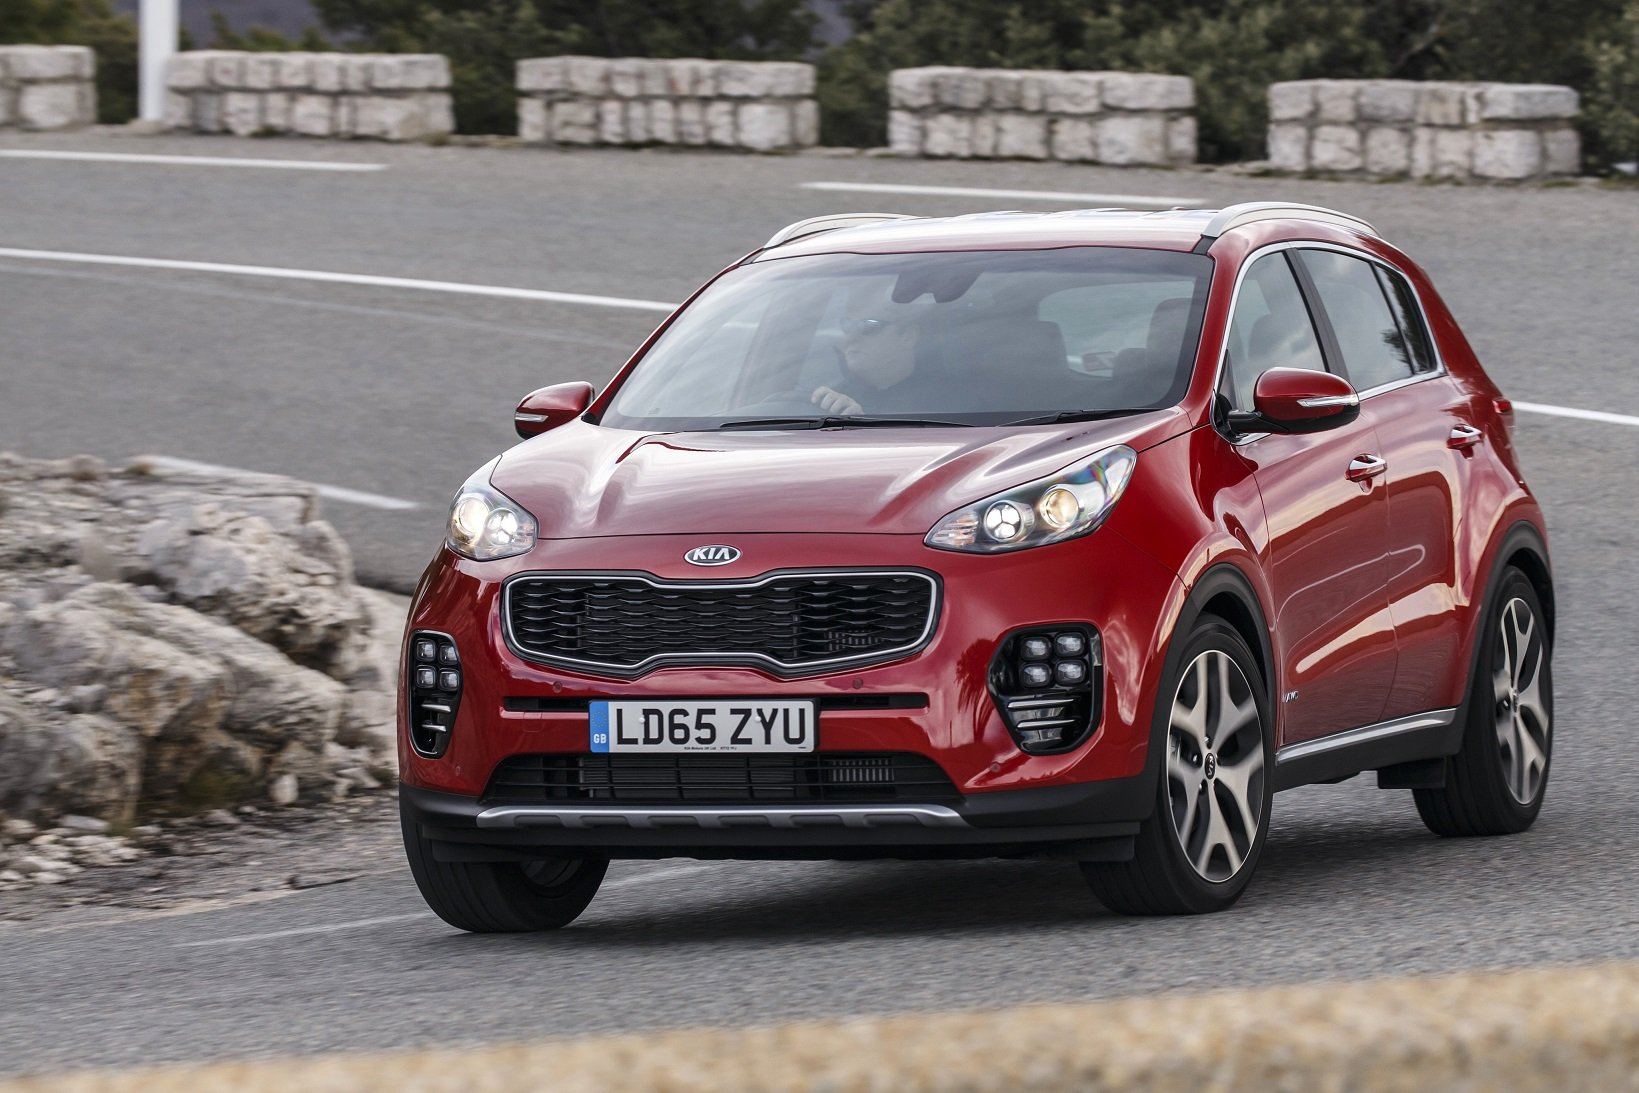 2016 cars uk version kia sportage suv gt line red wallpaper 1639x1093 887270 wallpaperup. Black Bedroom Furniture Sets. Home Design Ideas